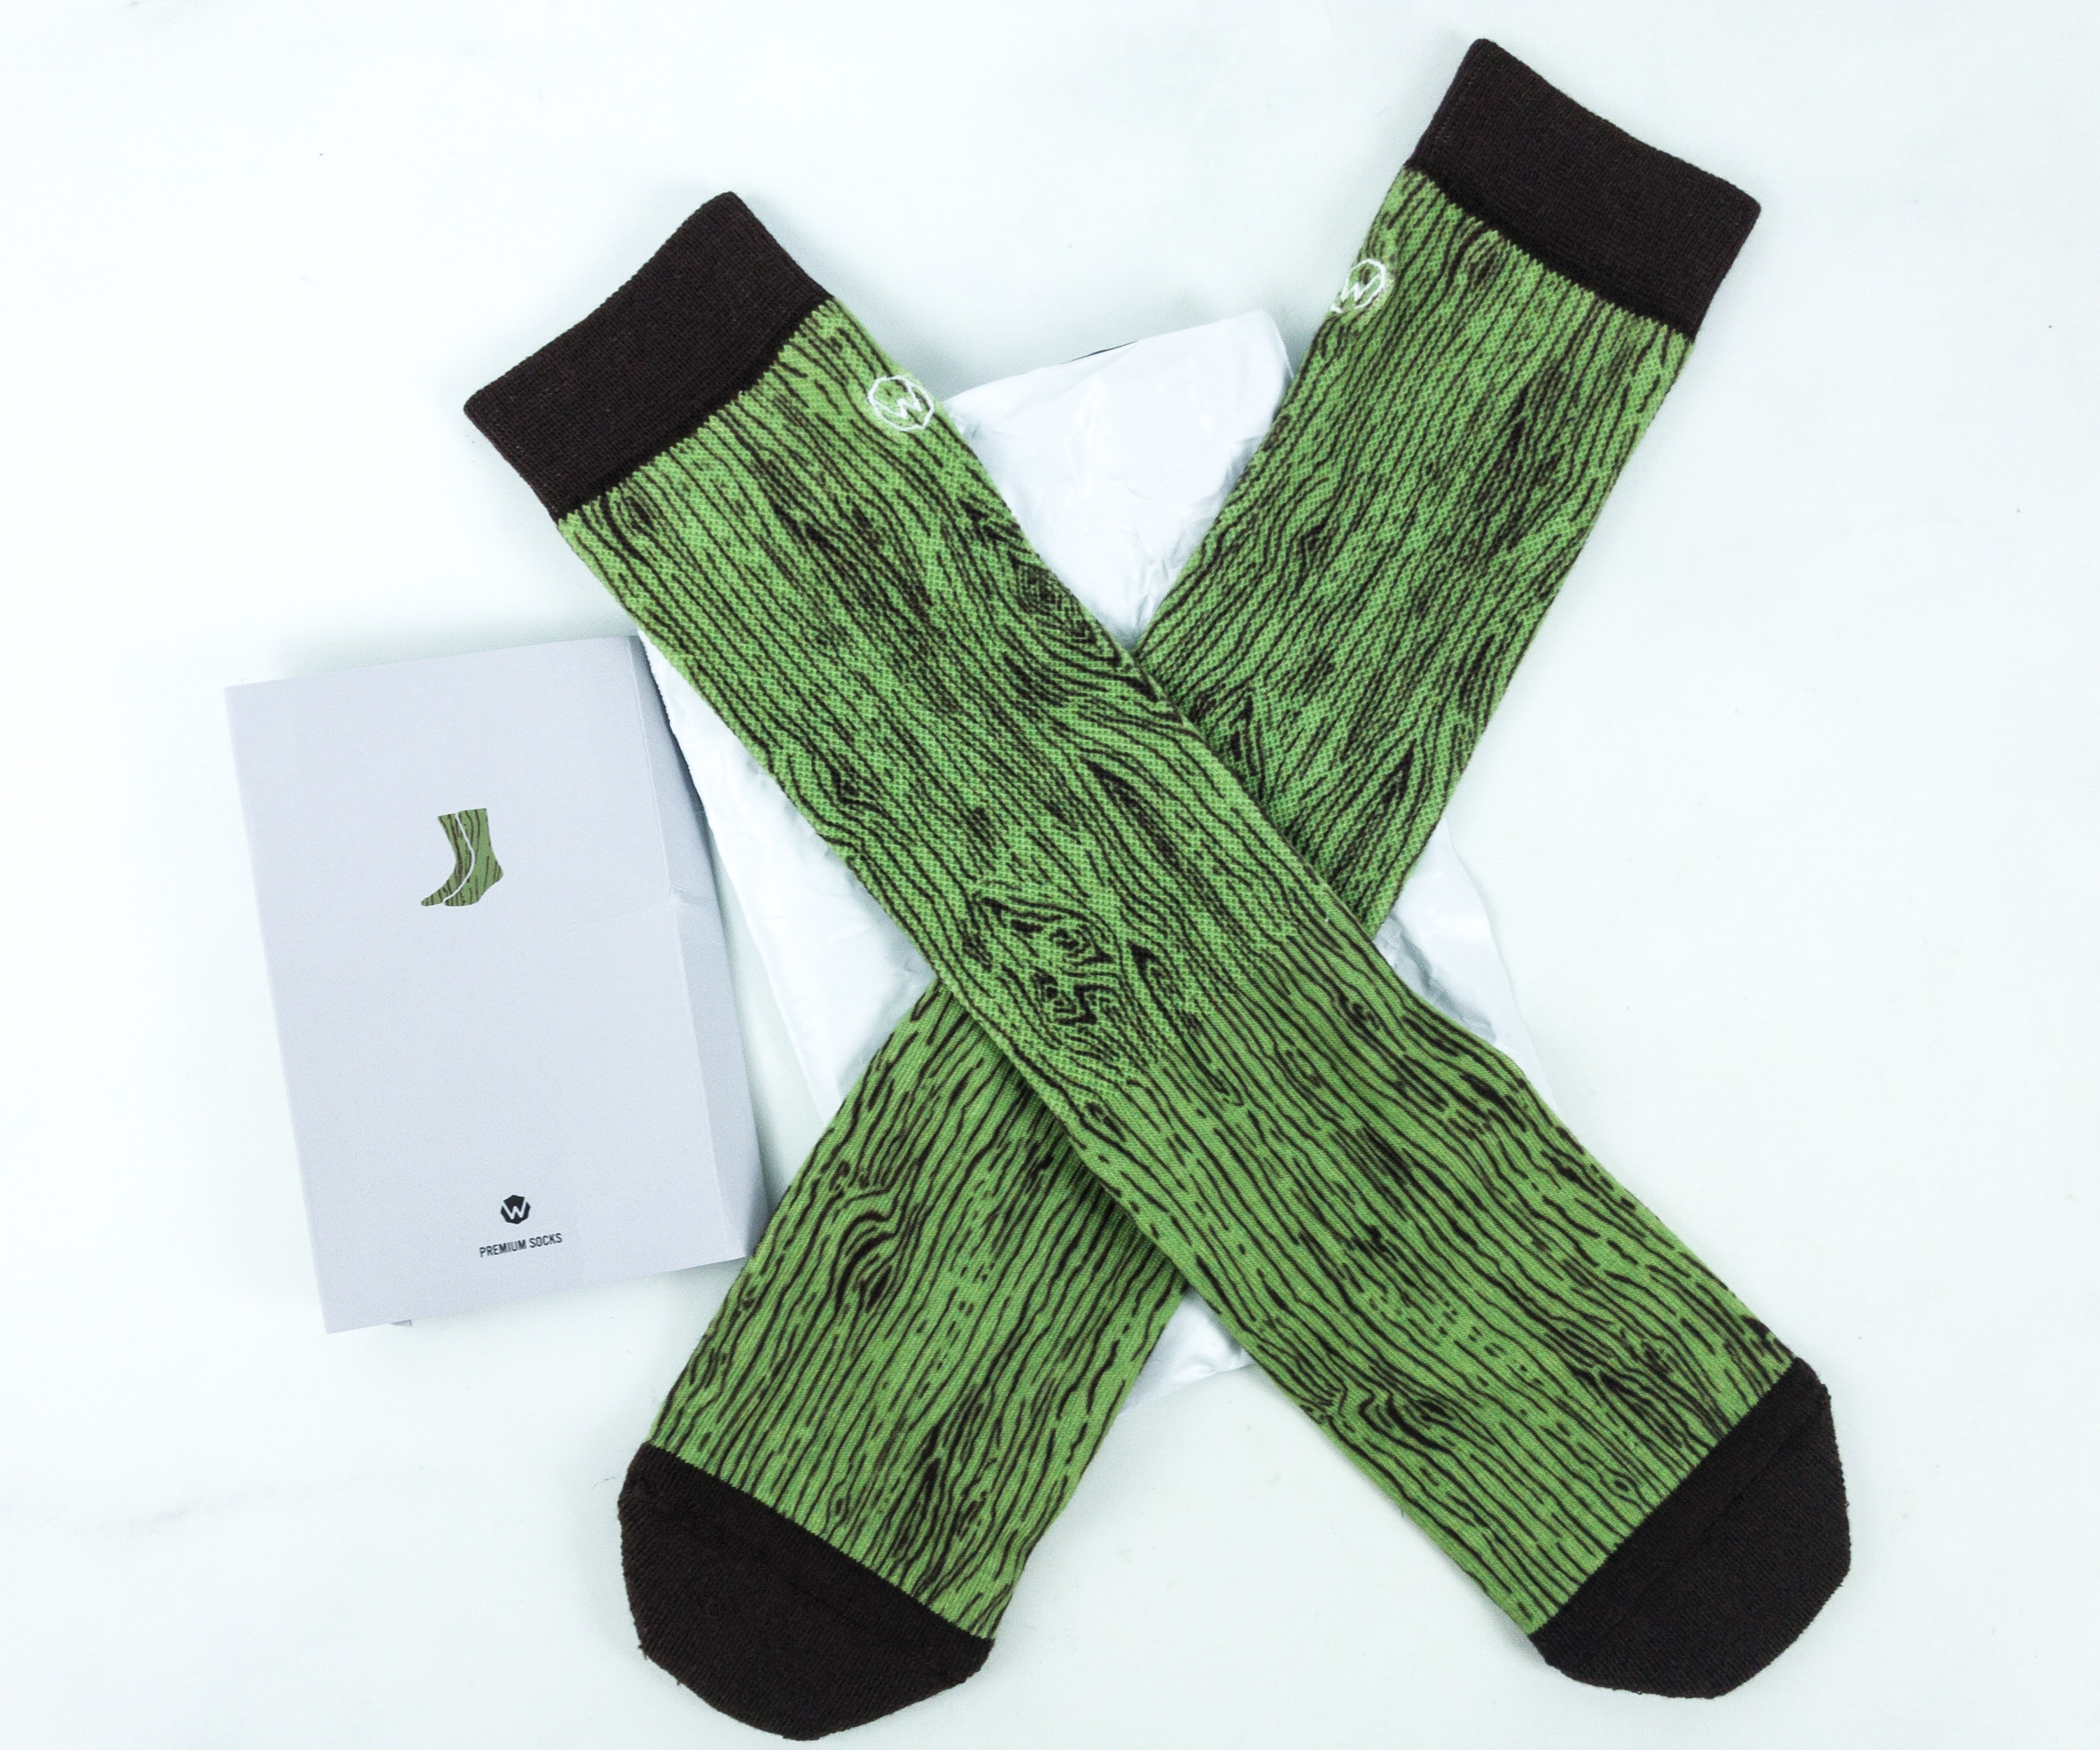 Wohven Socks Subscription June 2019 Review + Coupon!